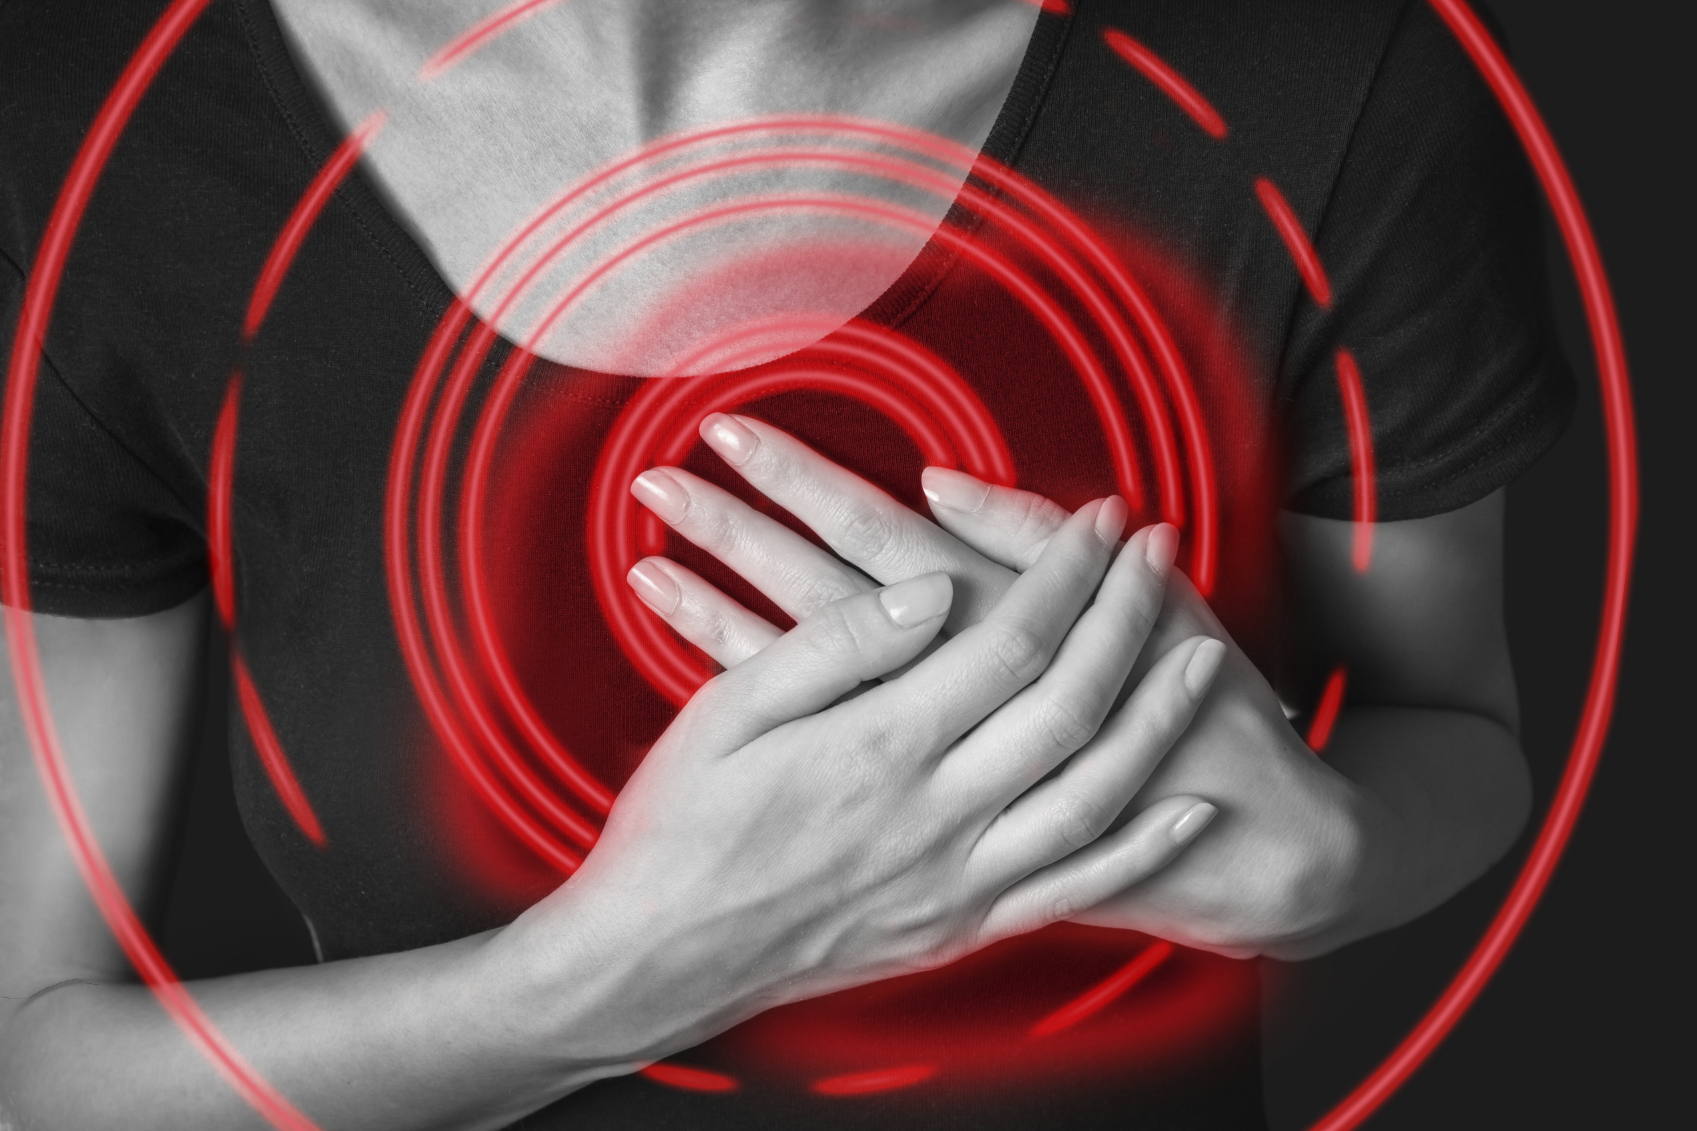 Possibility Of Heart Attack Symptoms